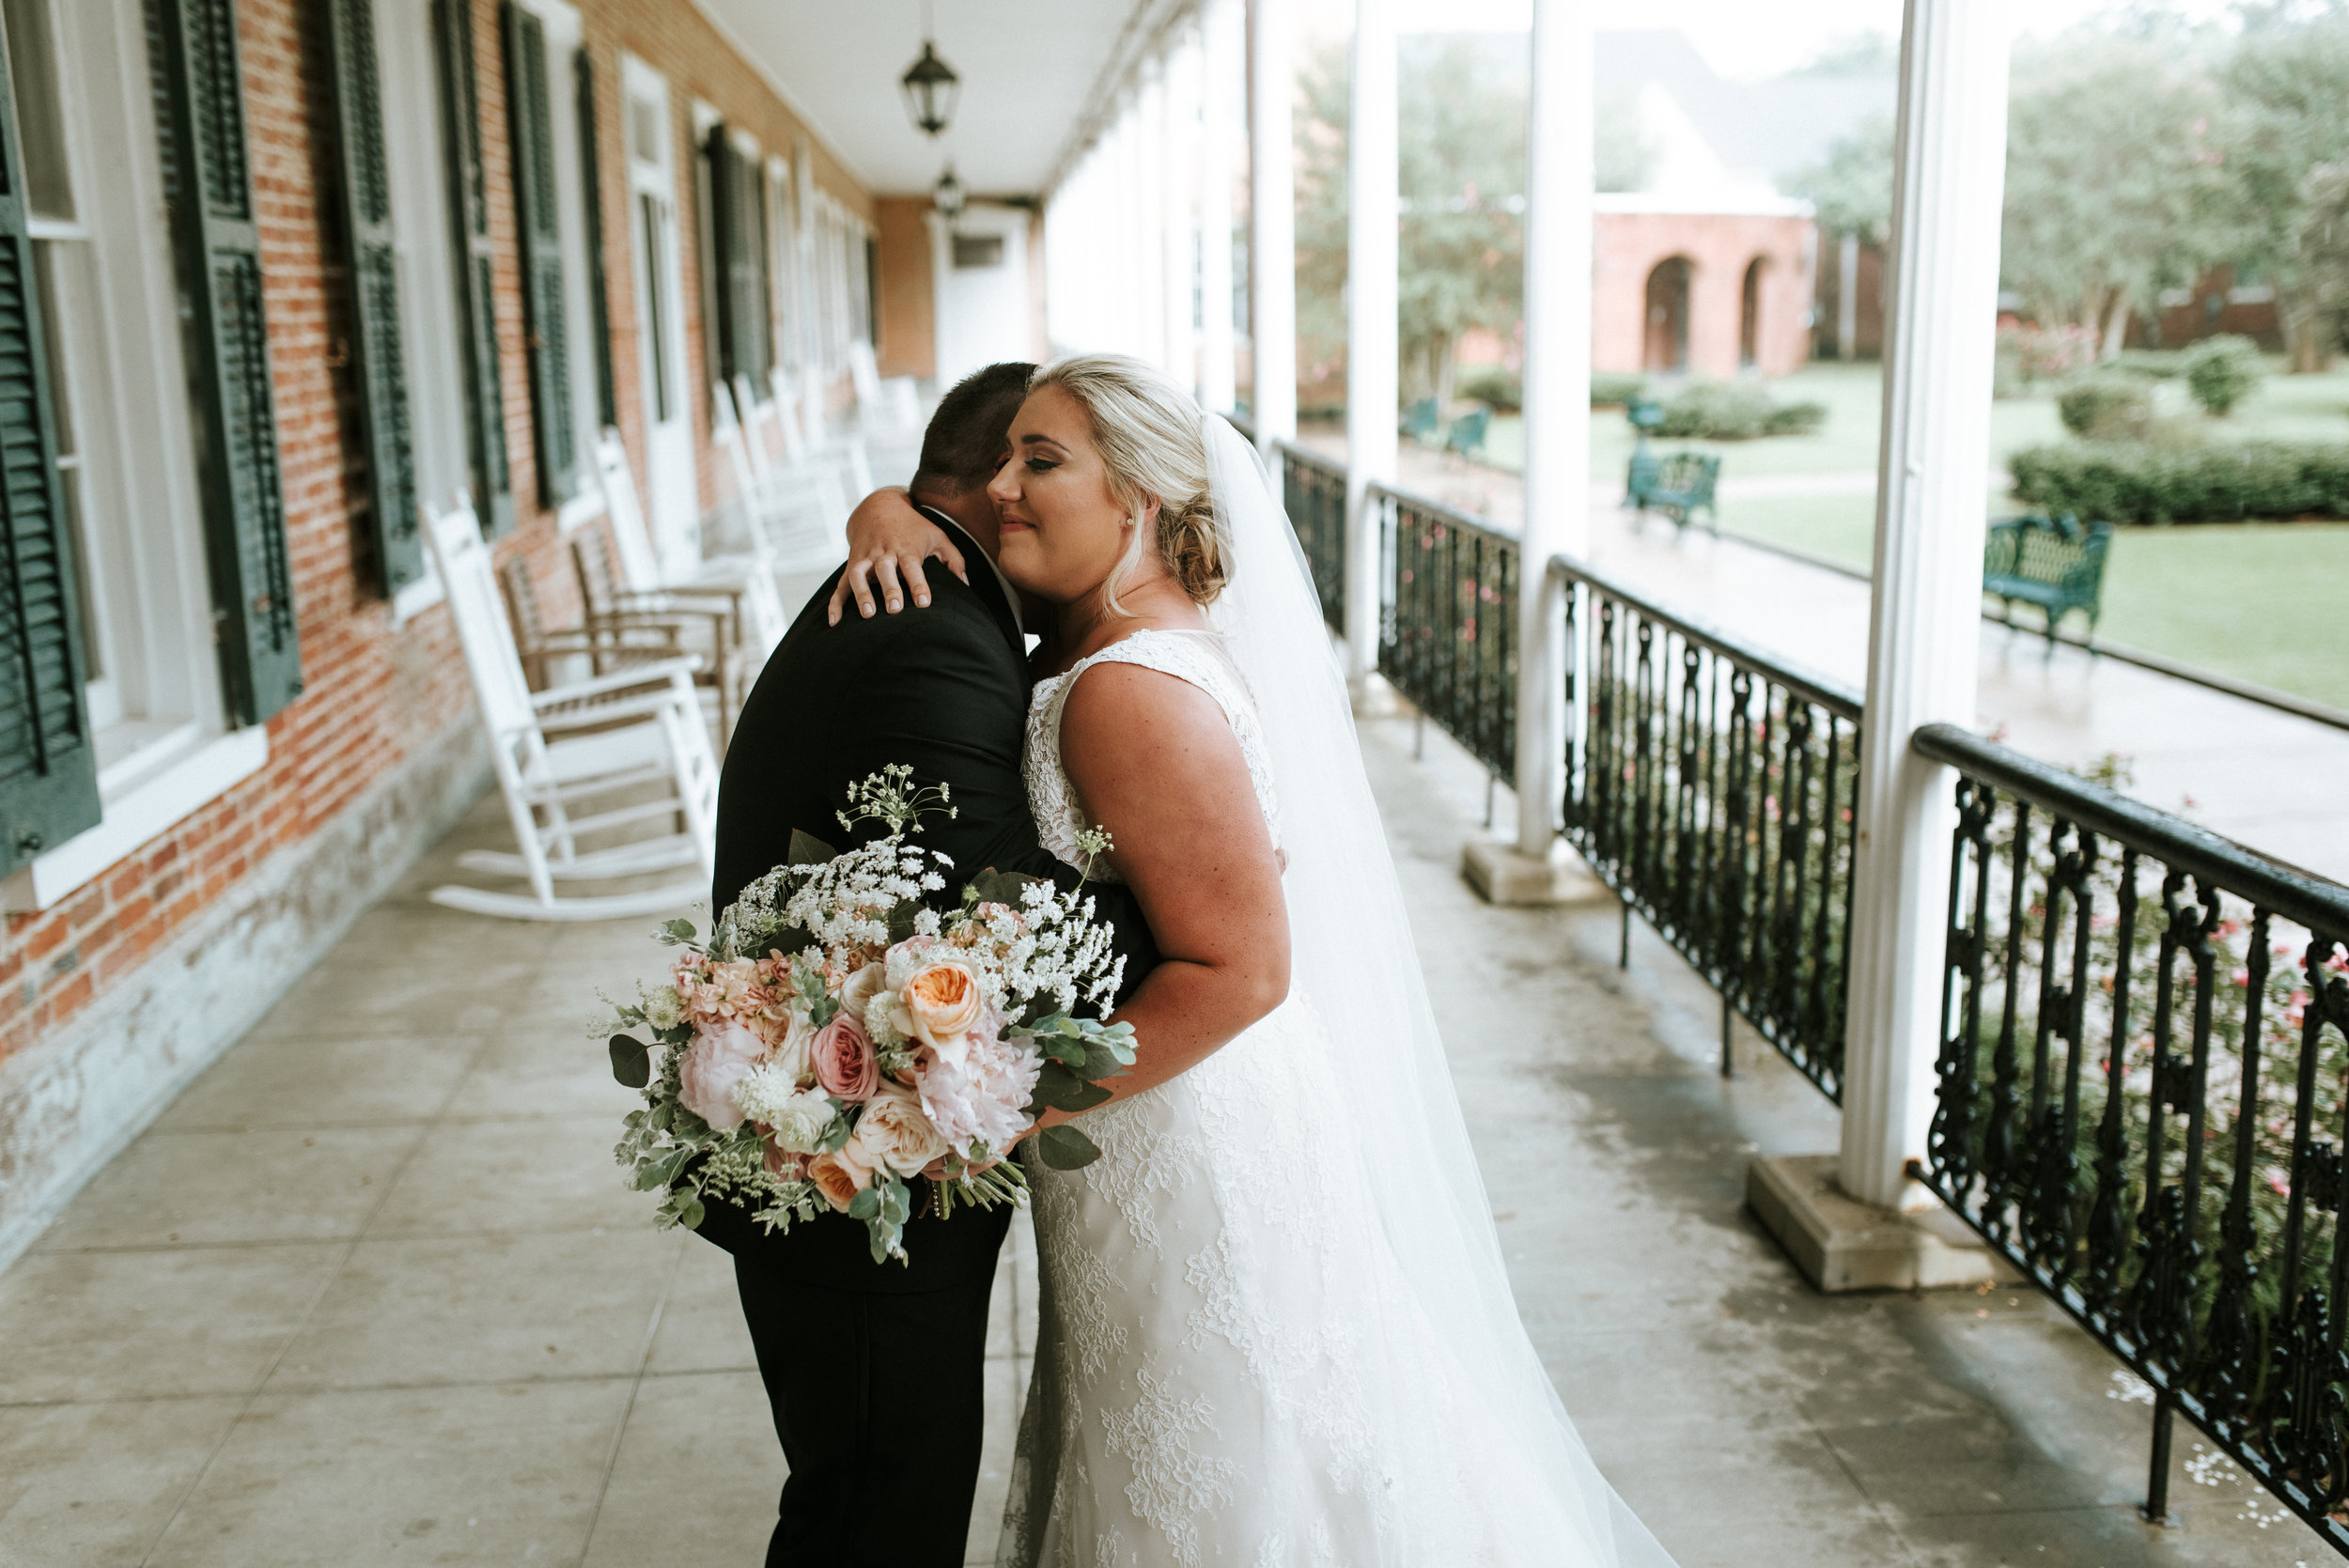 Southern Fete, Southern Wedding, Root Floral Design, Bride and Groom